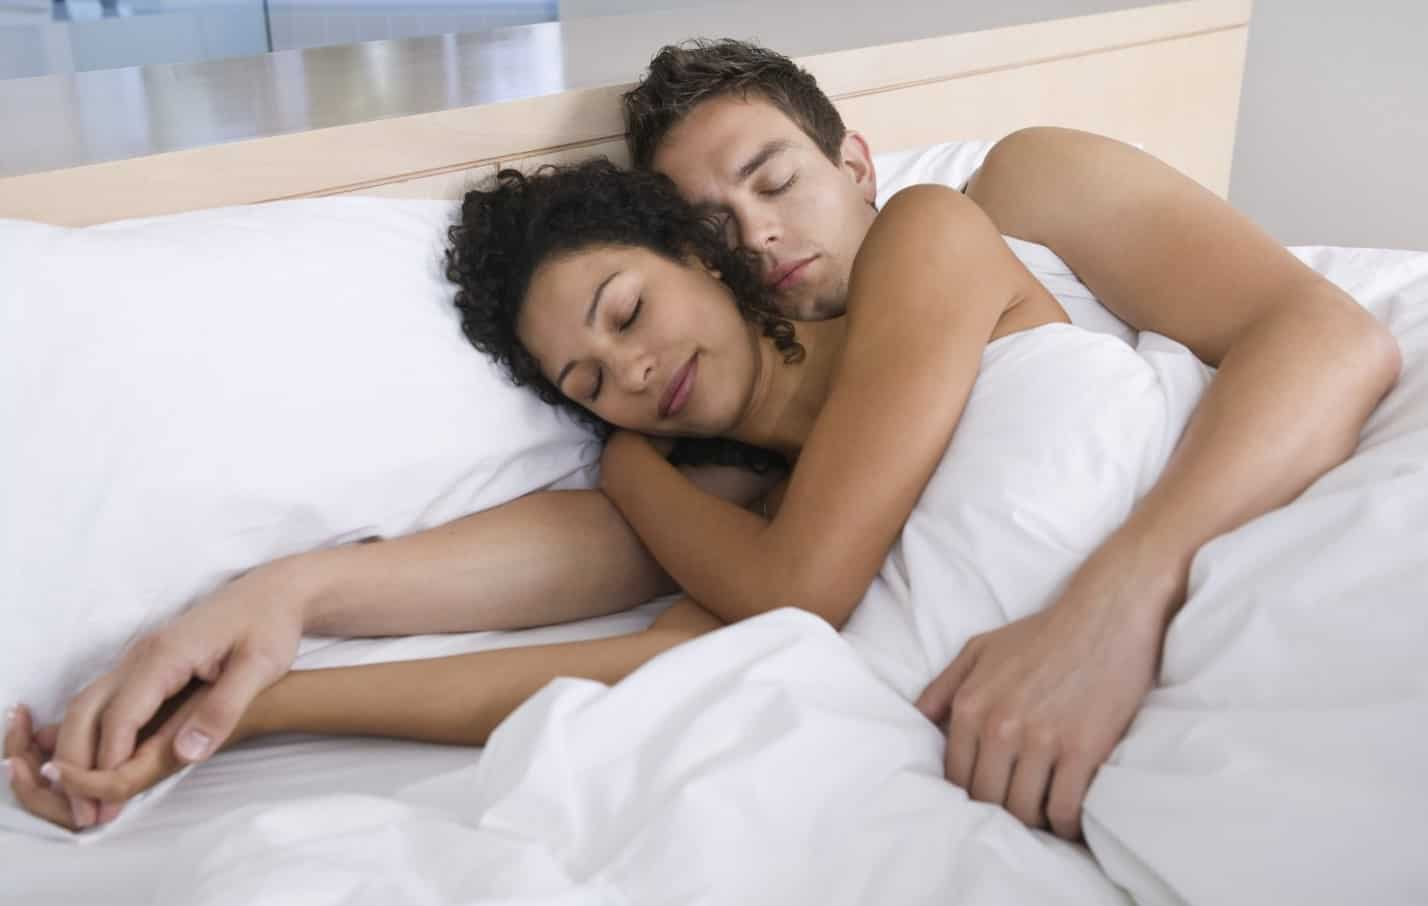 naked sleeping Helps Your Marriage